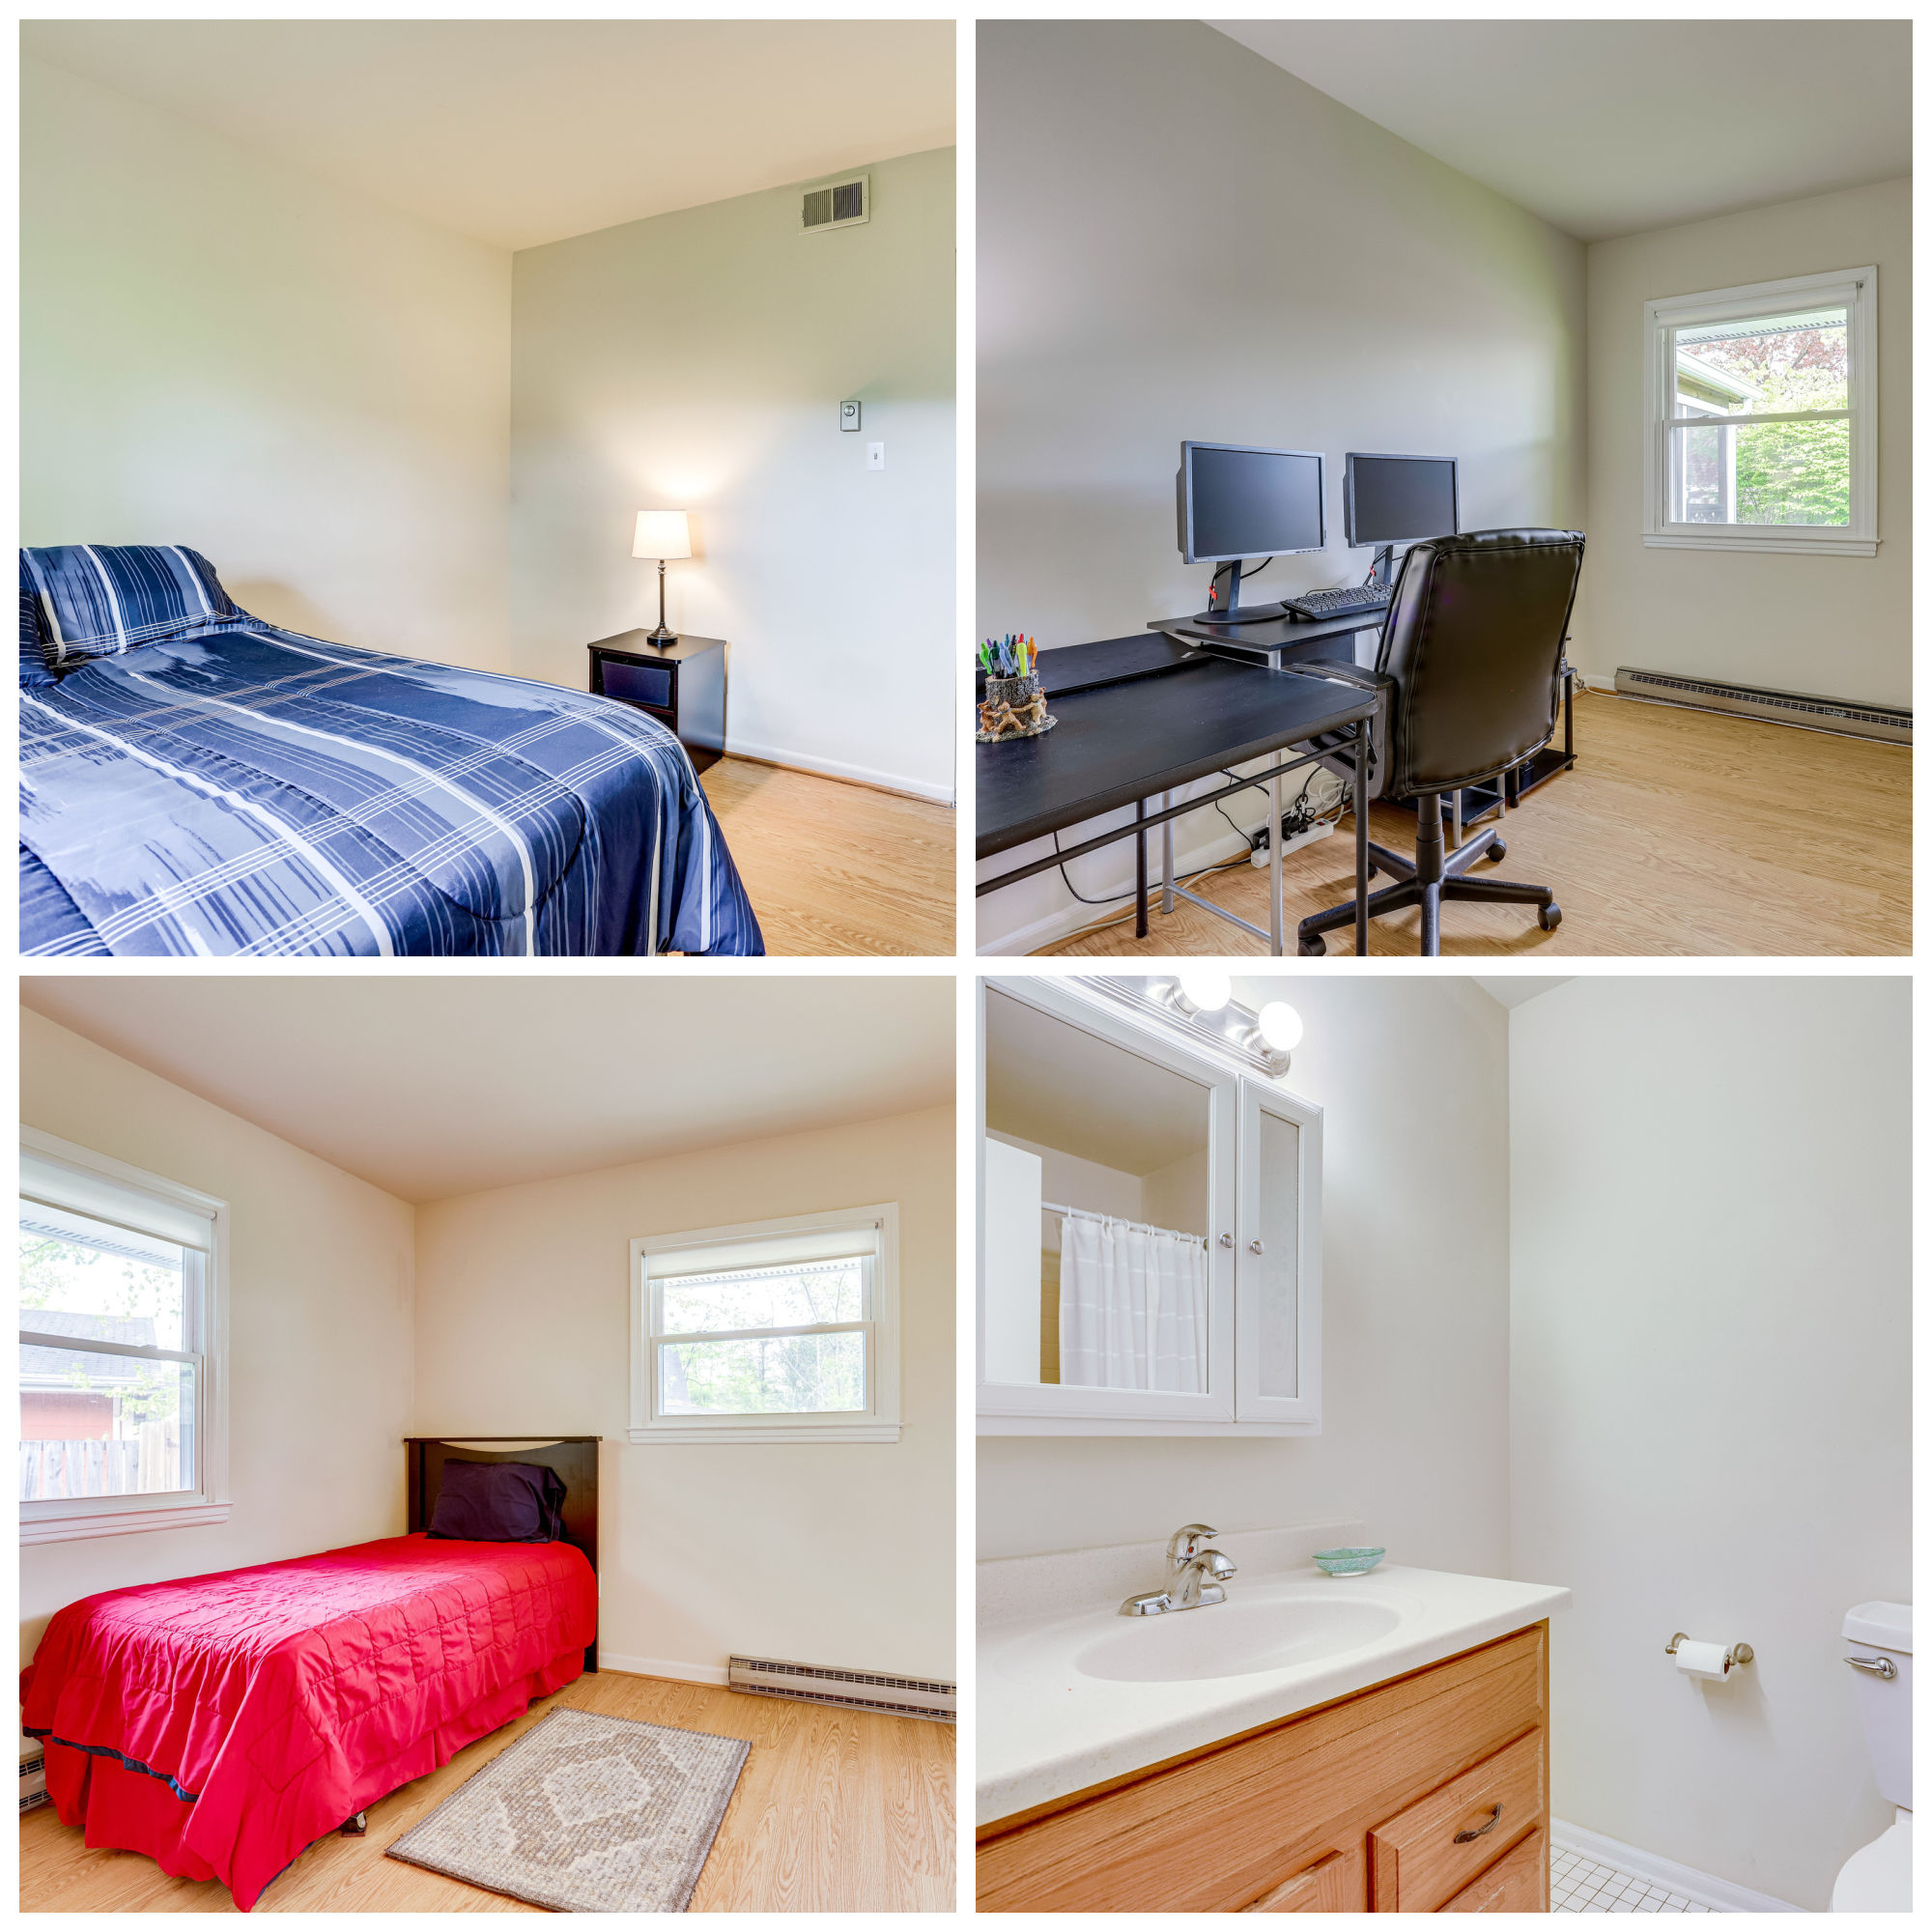 605 E Roanoke Rd, Sterling- Additional Bedrooms and Bath